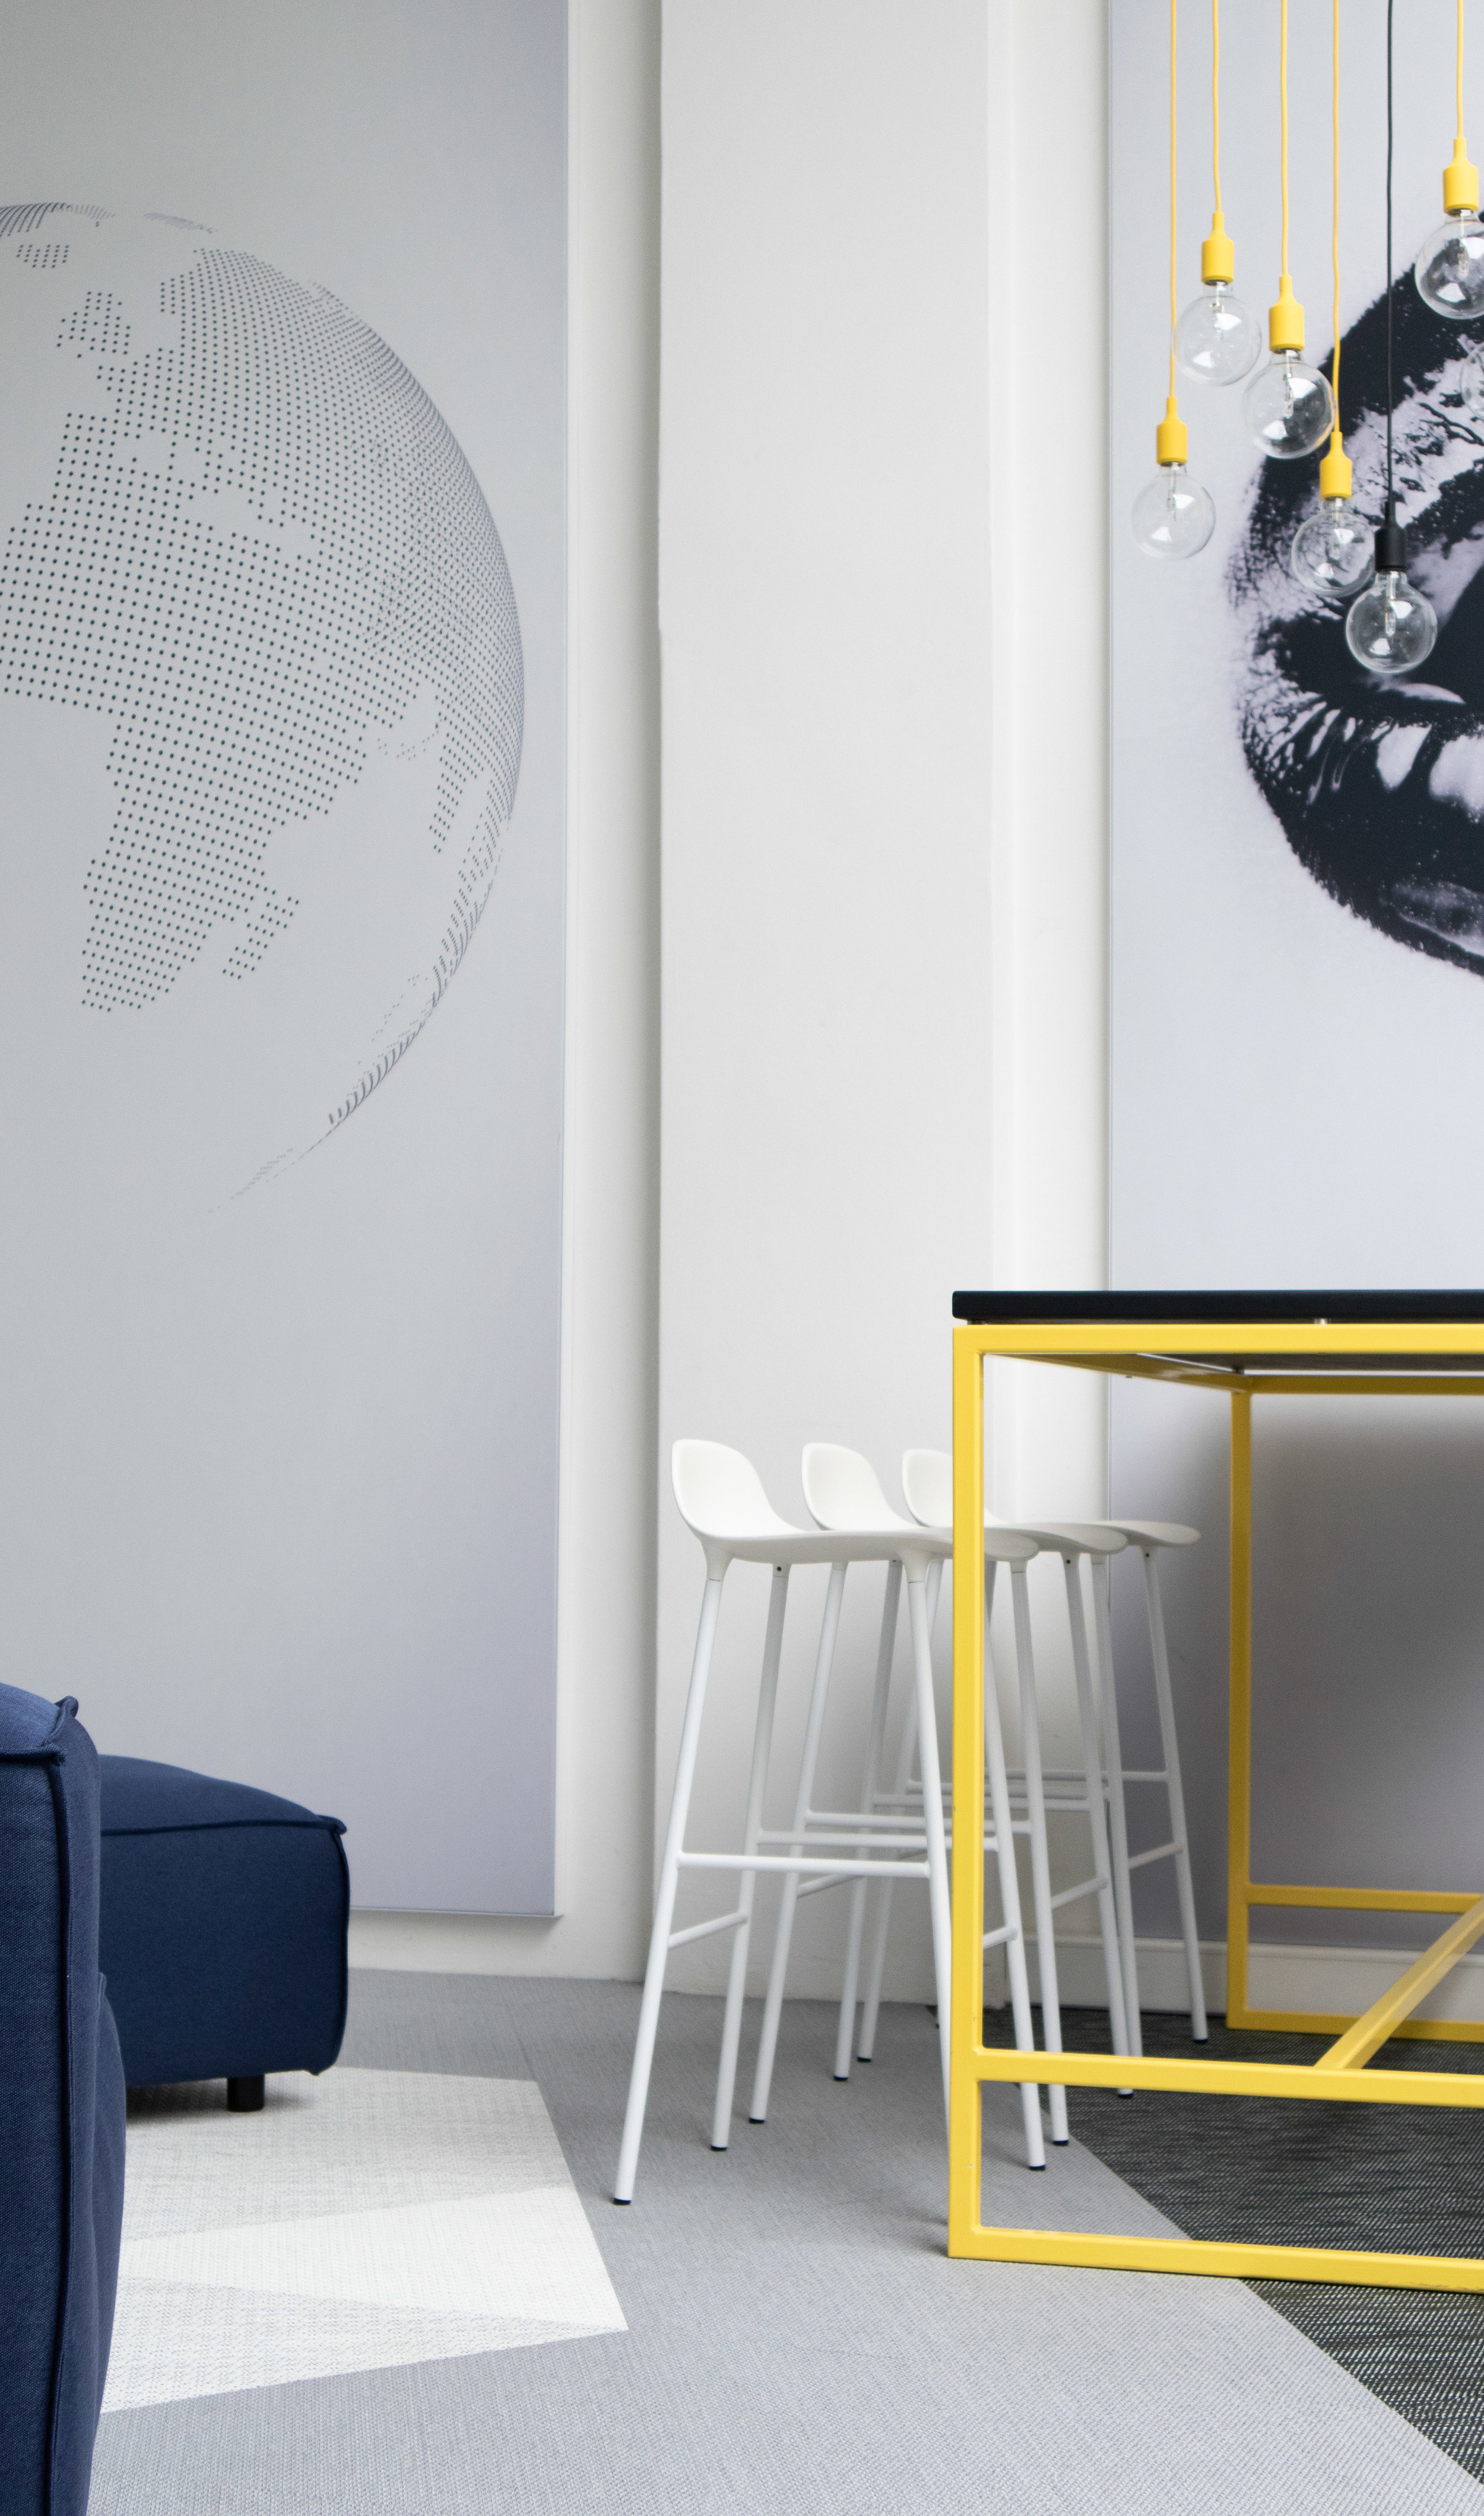 Lounge space, interior design project for Kors IT headquarters in Eindhoven .jpg